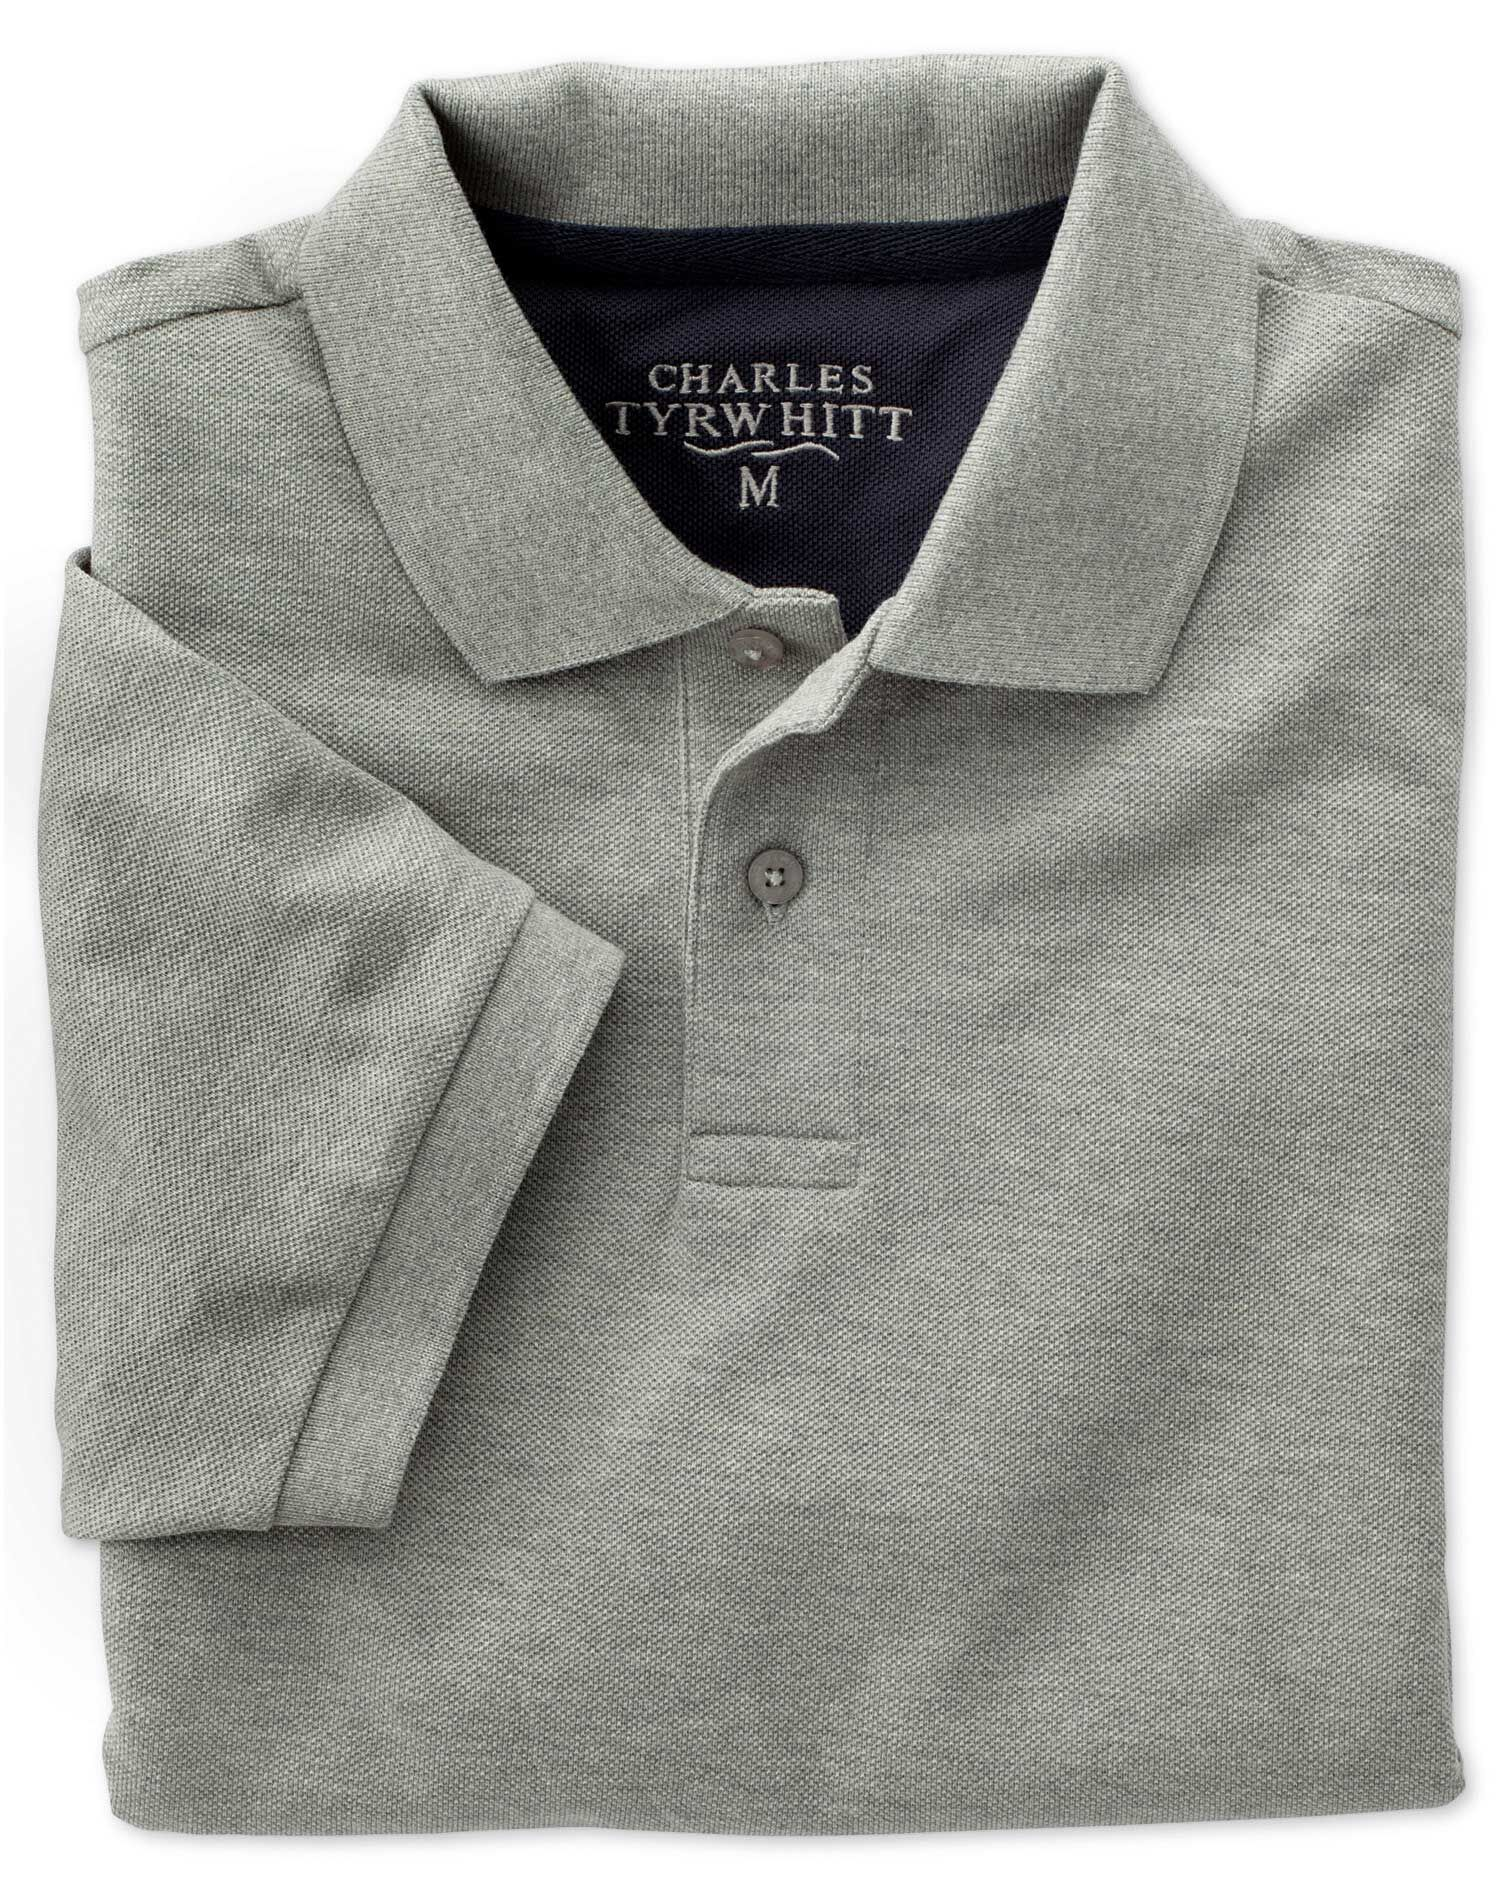 Grey Pique Cotton Polo Size Medium by Charles Tyrwhitt